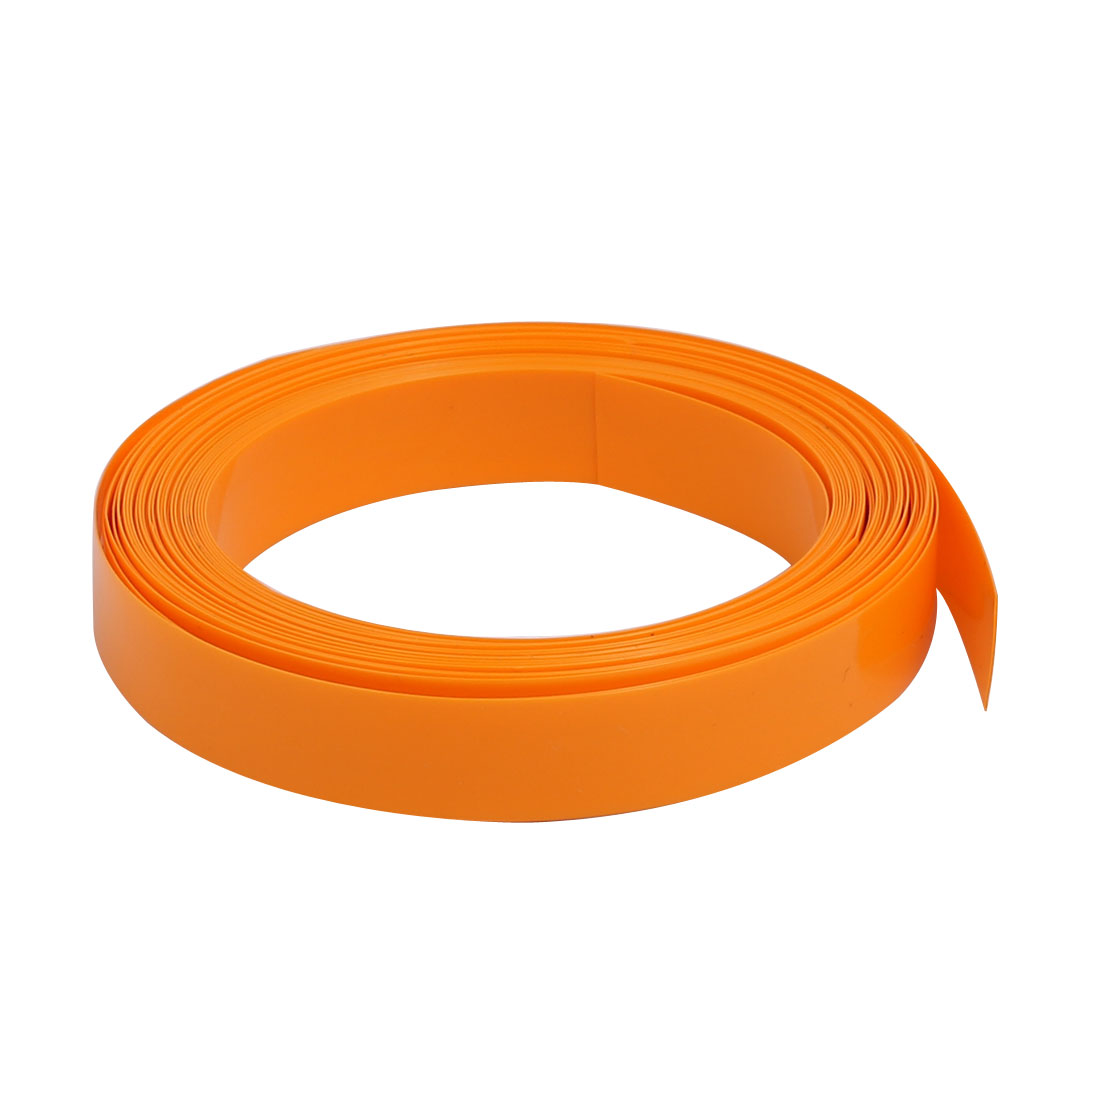 9mm Flat Width 5 Meter Long PVC Heat Shrinkable Tube Orange for Battery Pack